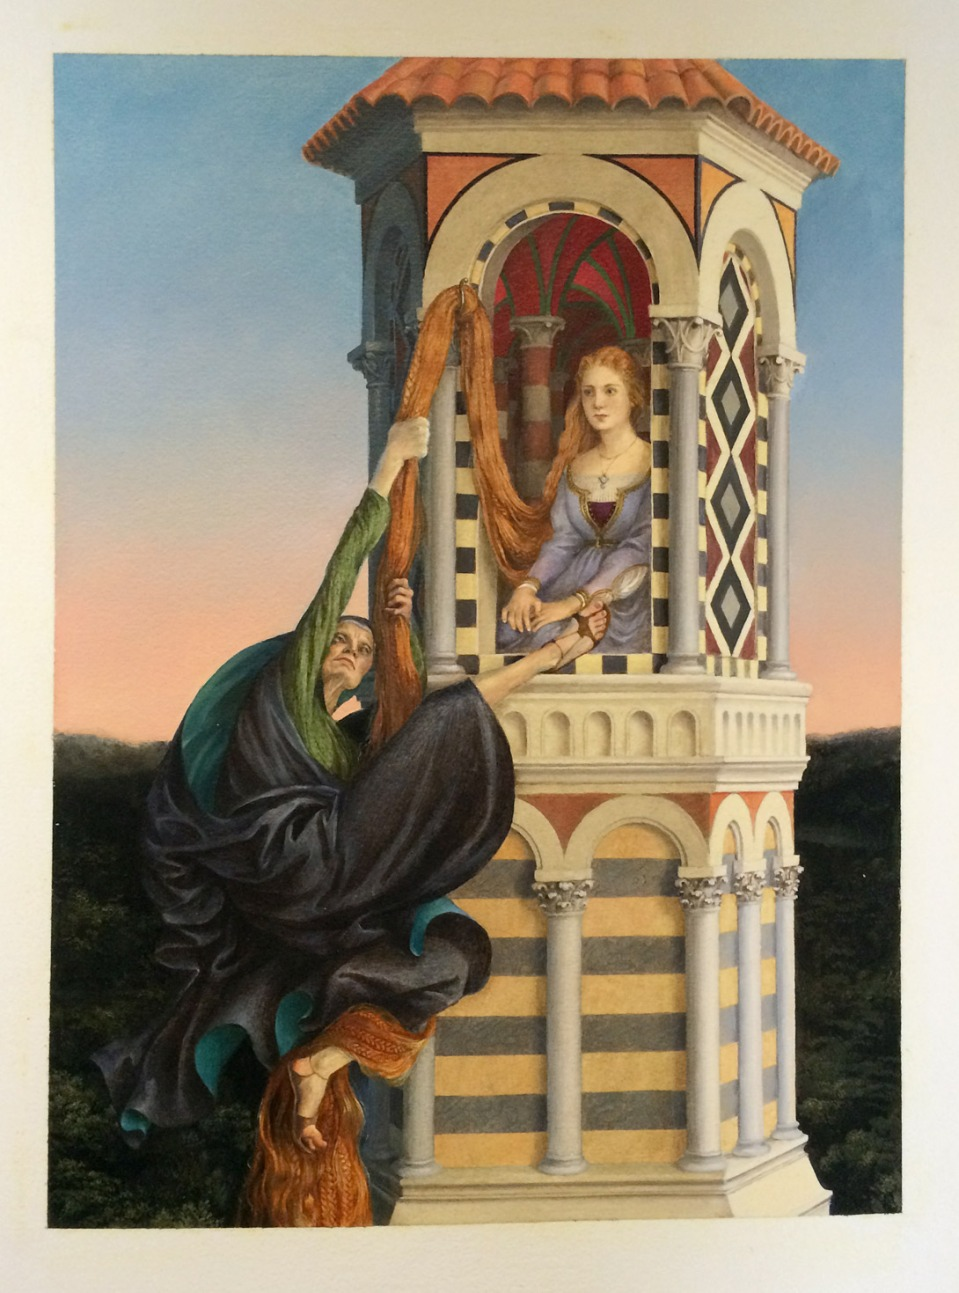 Painting from Rapunzel by Paul O. Zelinsky (click to enlarge)